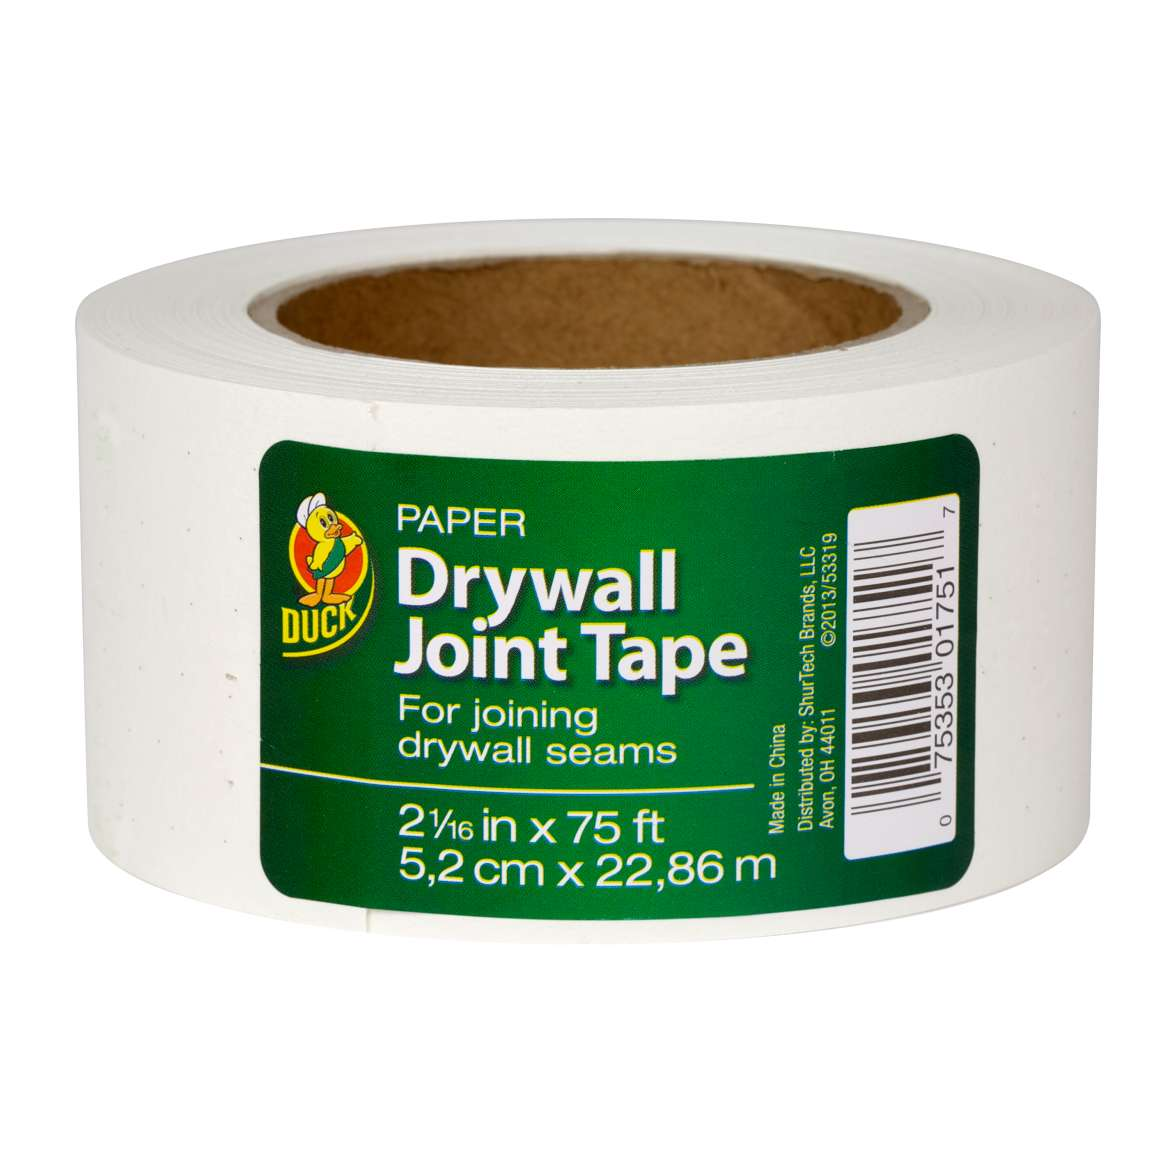 Paper Drywall Joint Tape